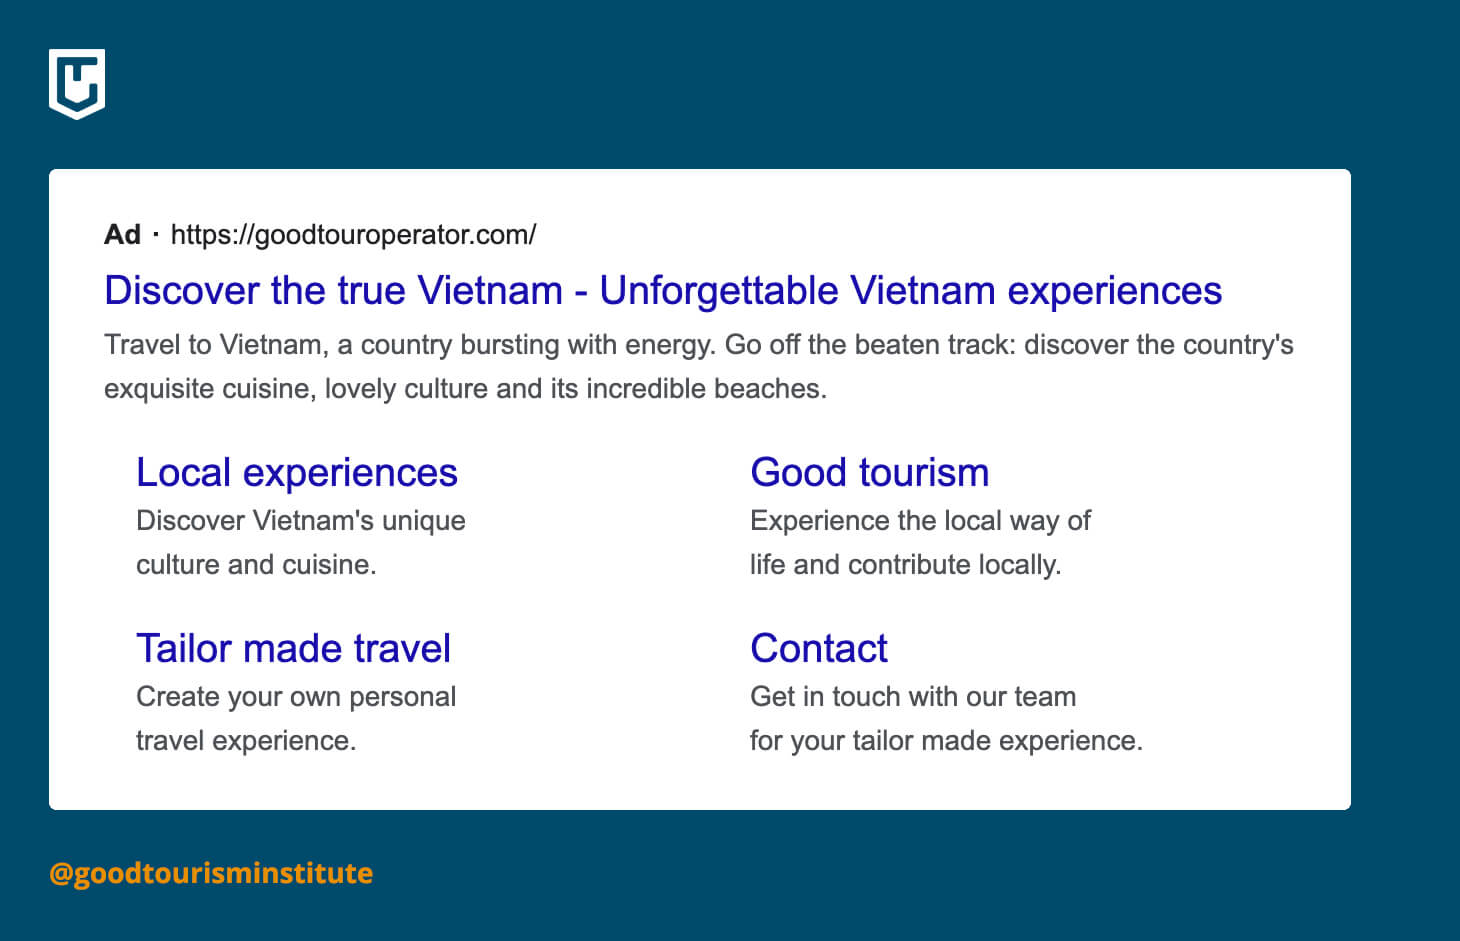 Google Ads example in tourism